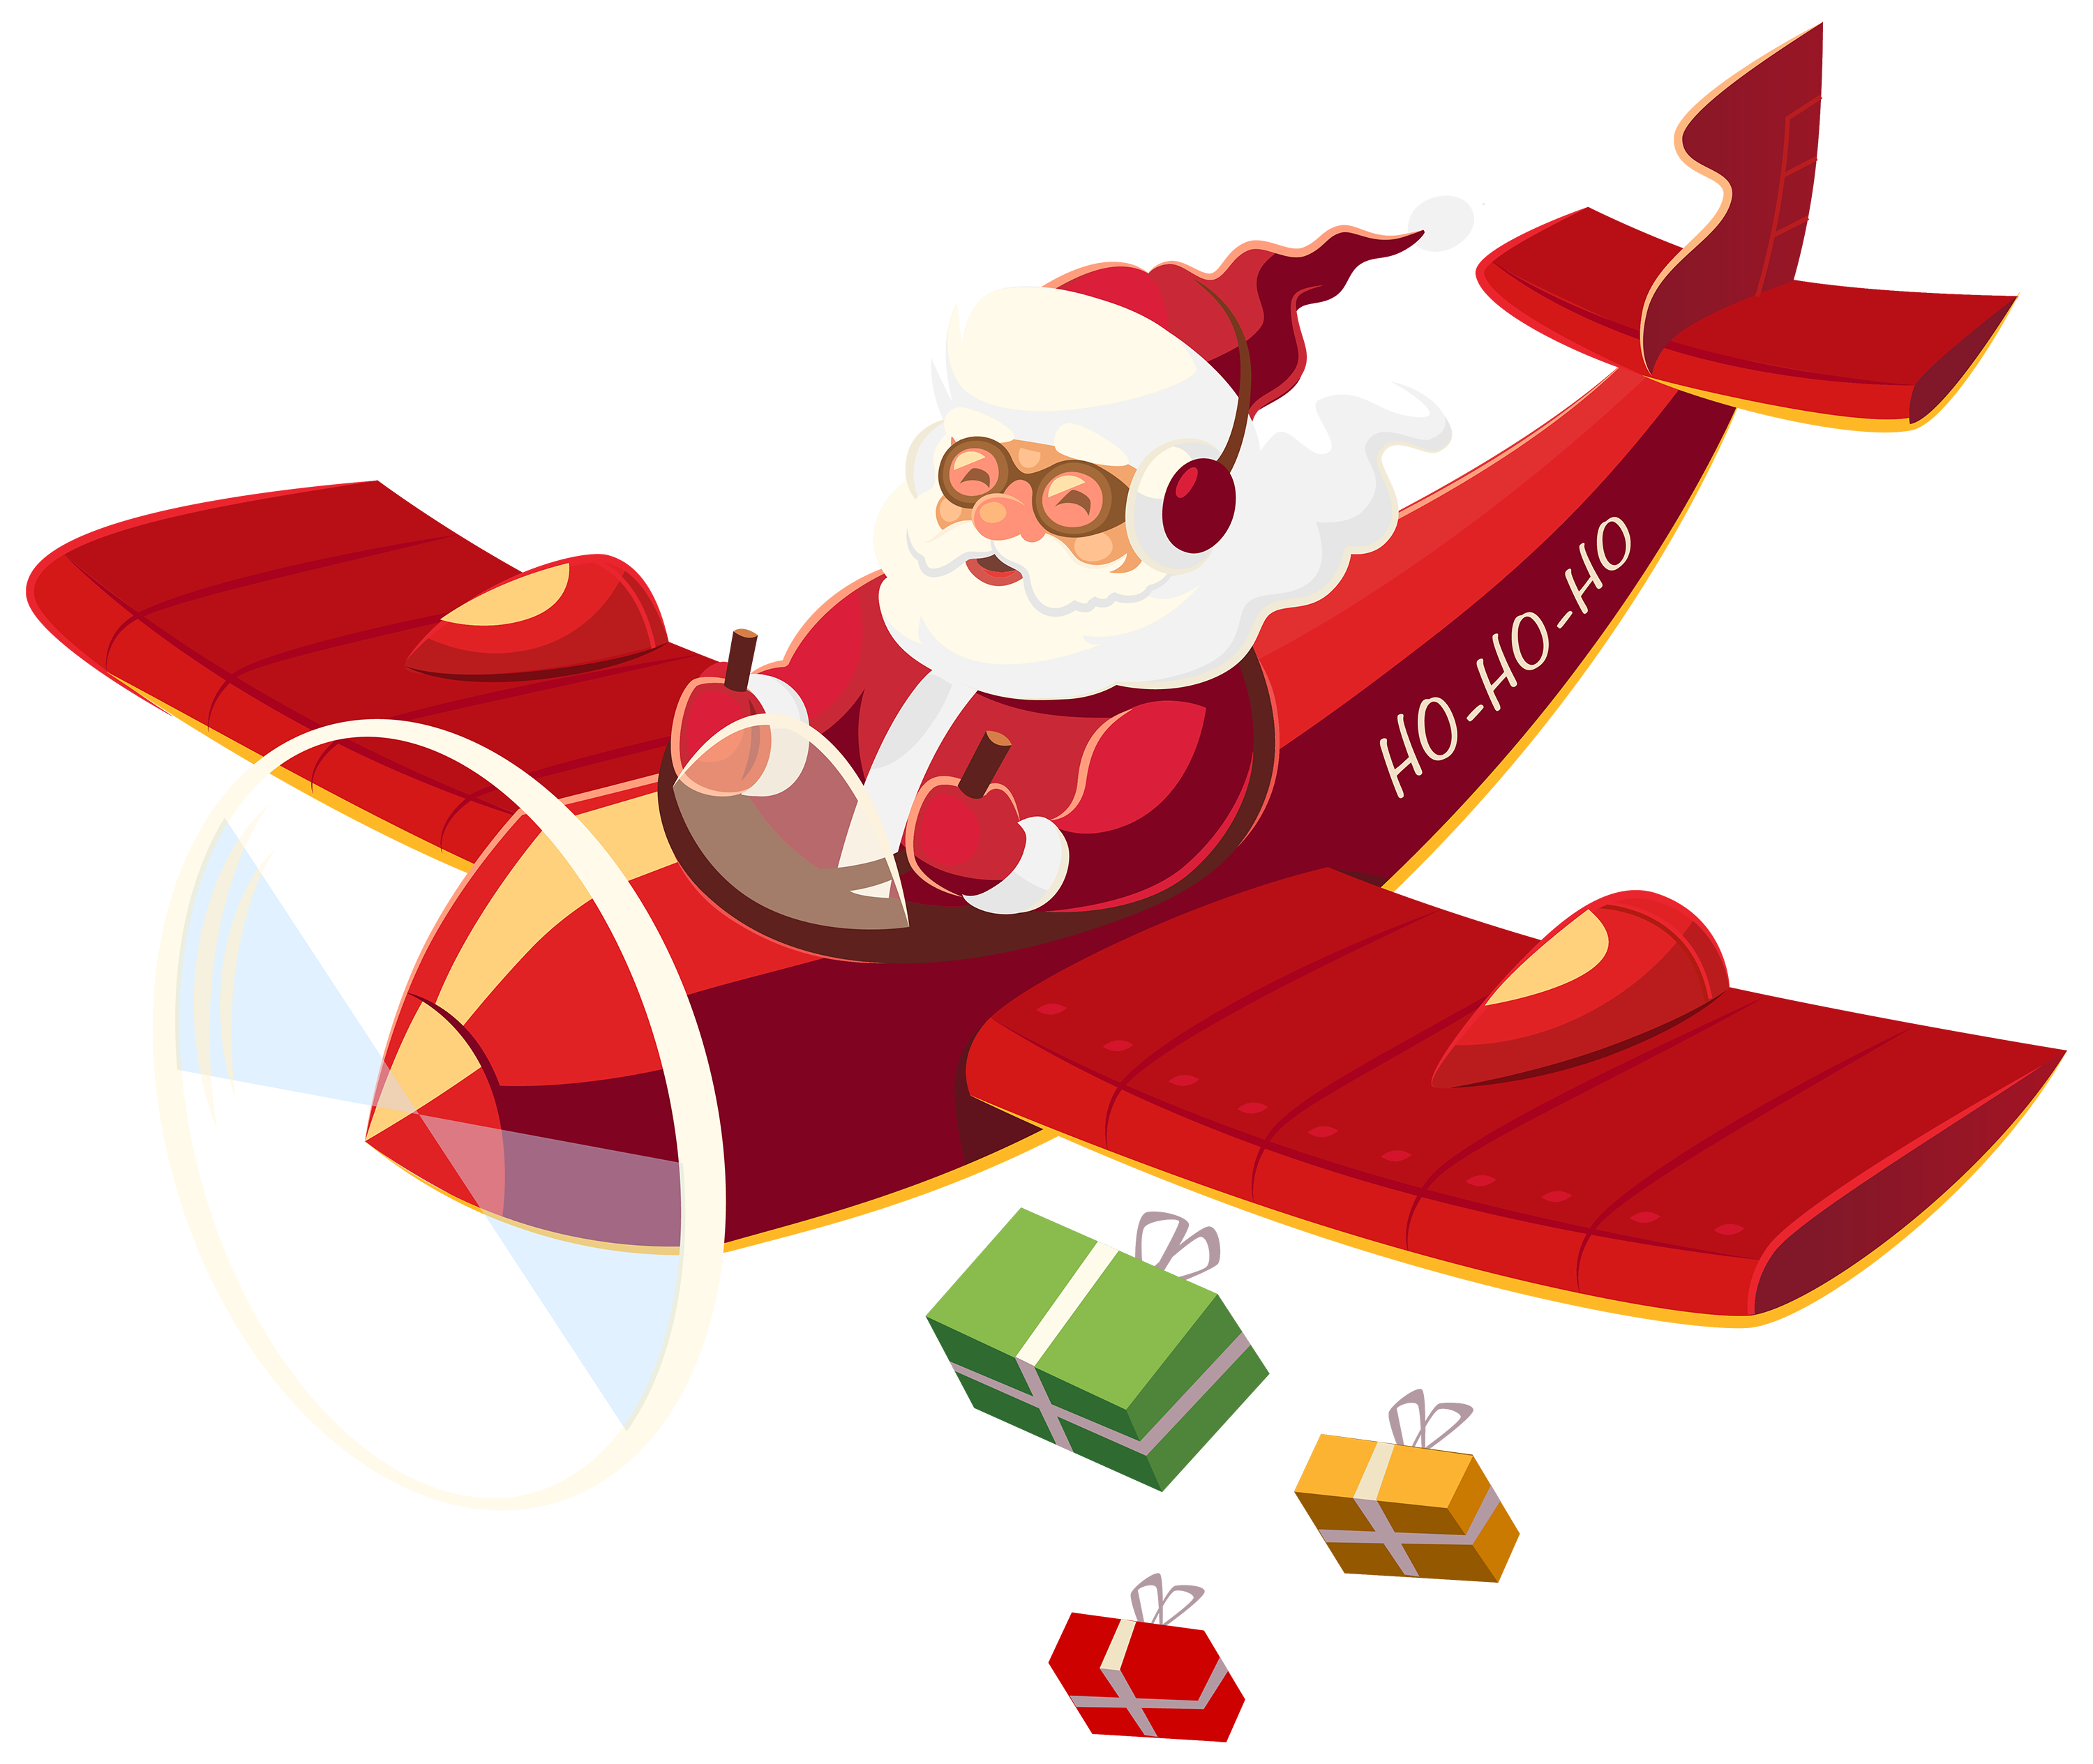 Plane clipart turbine. Santa claus with png